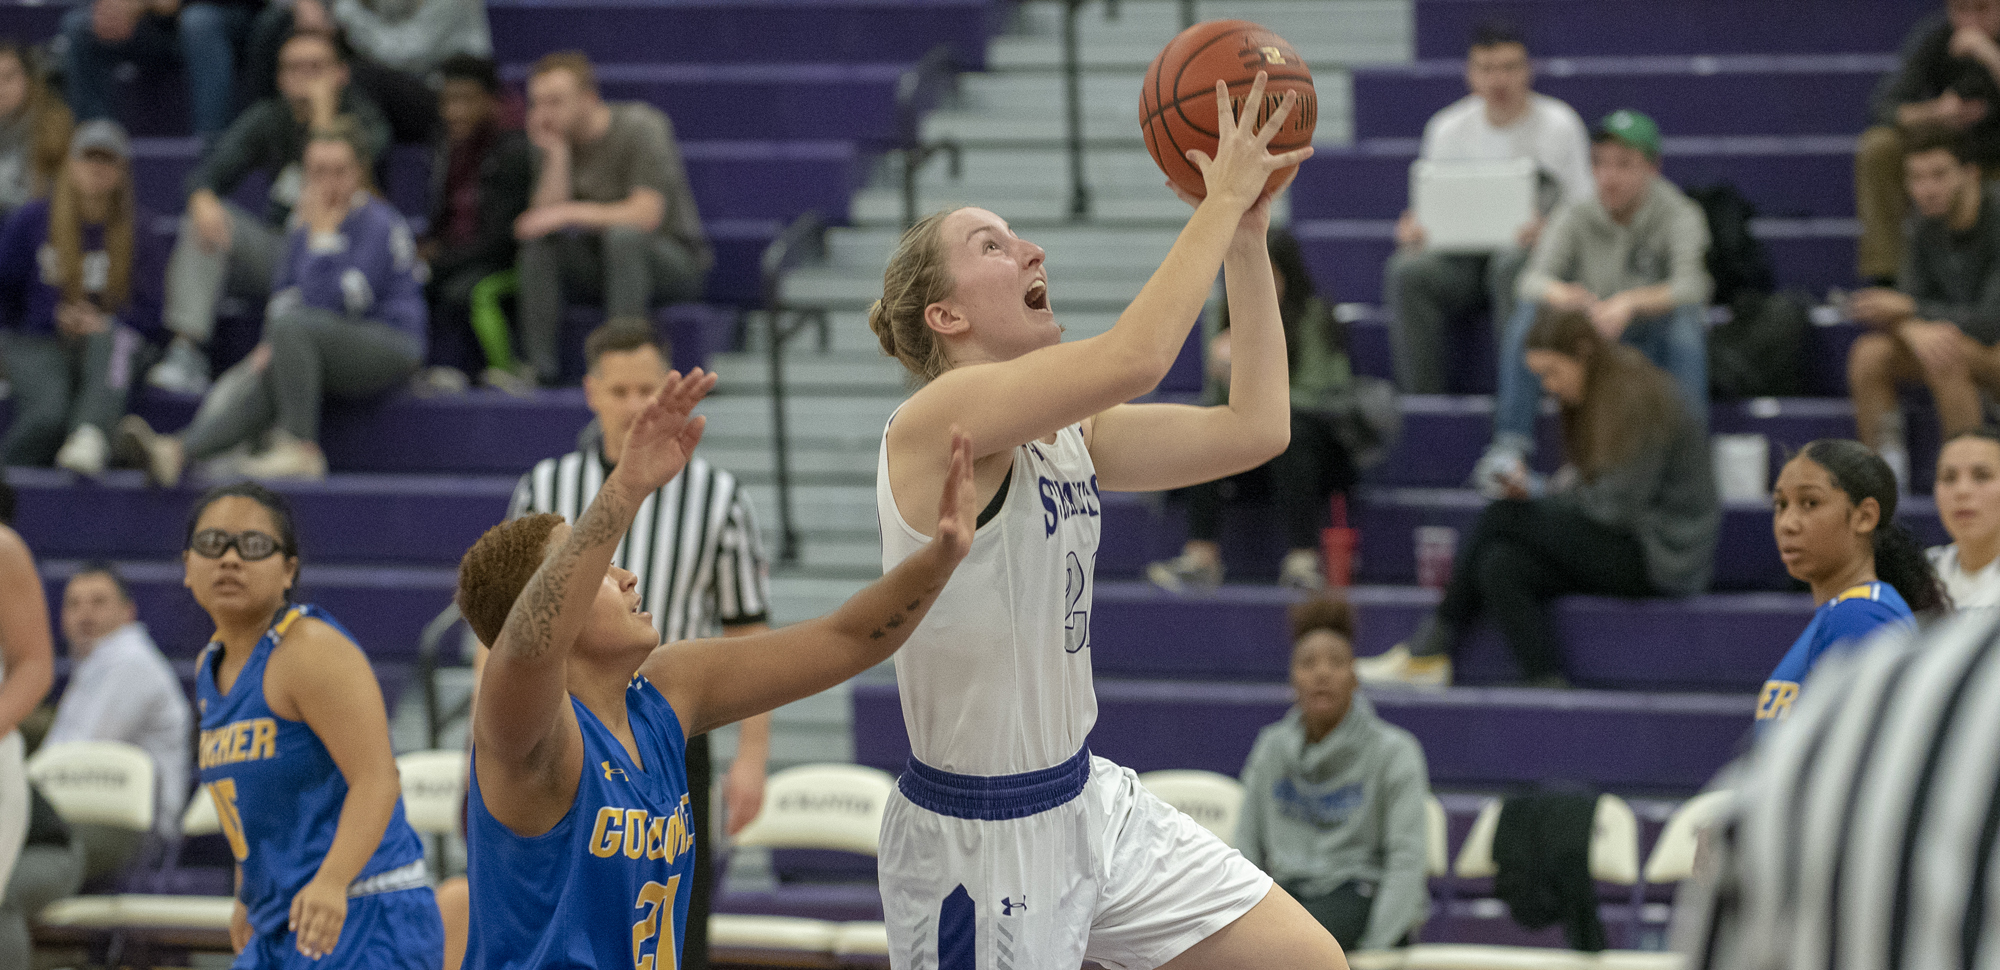 Junior Makenzie Mason recorded her seventh double-double of the year, scoring 19 points and pulling down a career-high 18 rebounds to lead the Lady Royals to a 69-46 win at Goucher Saturday.